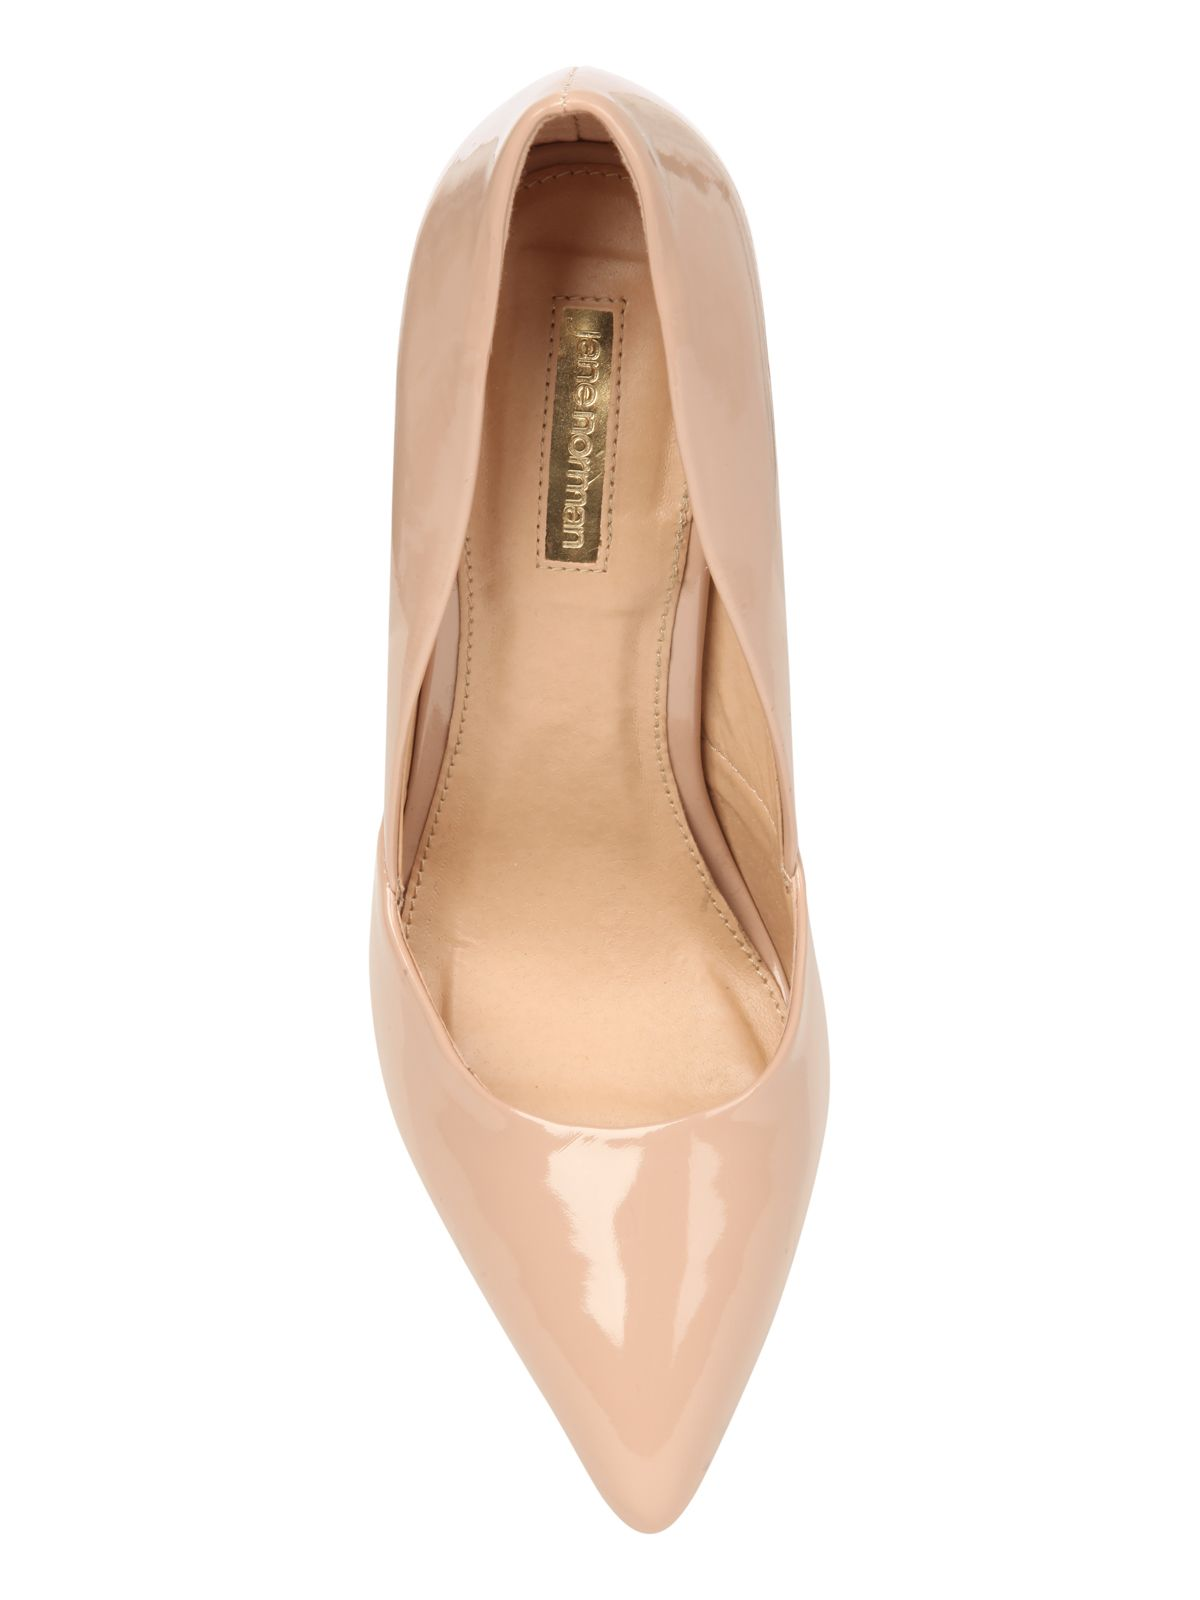 Patent pointed court shoe